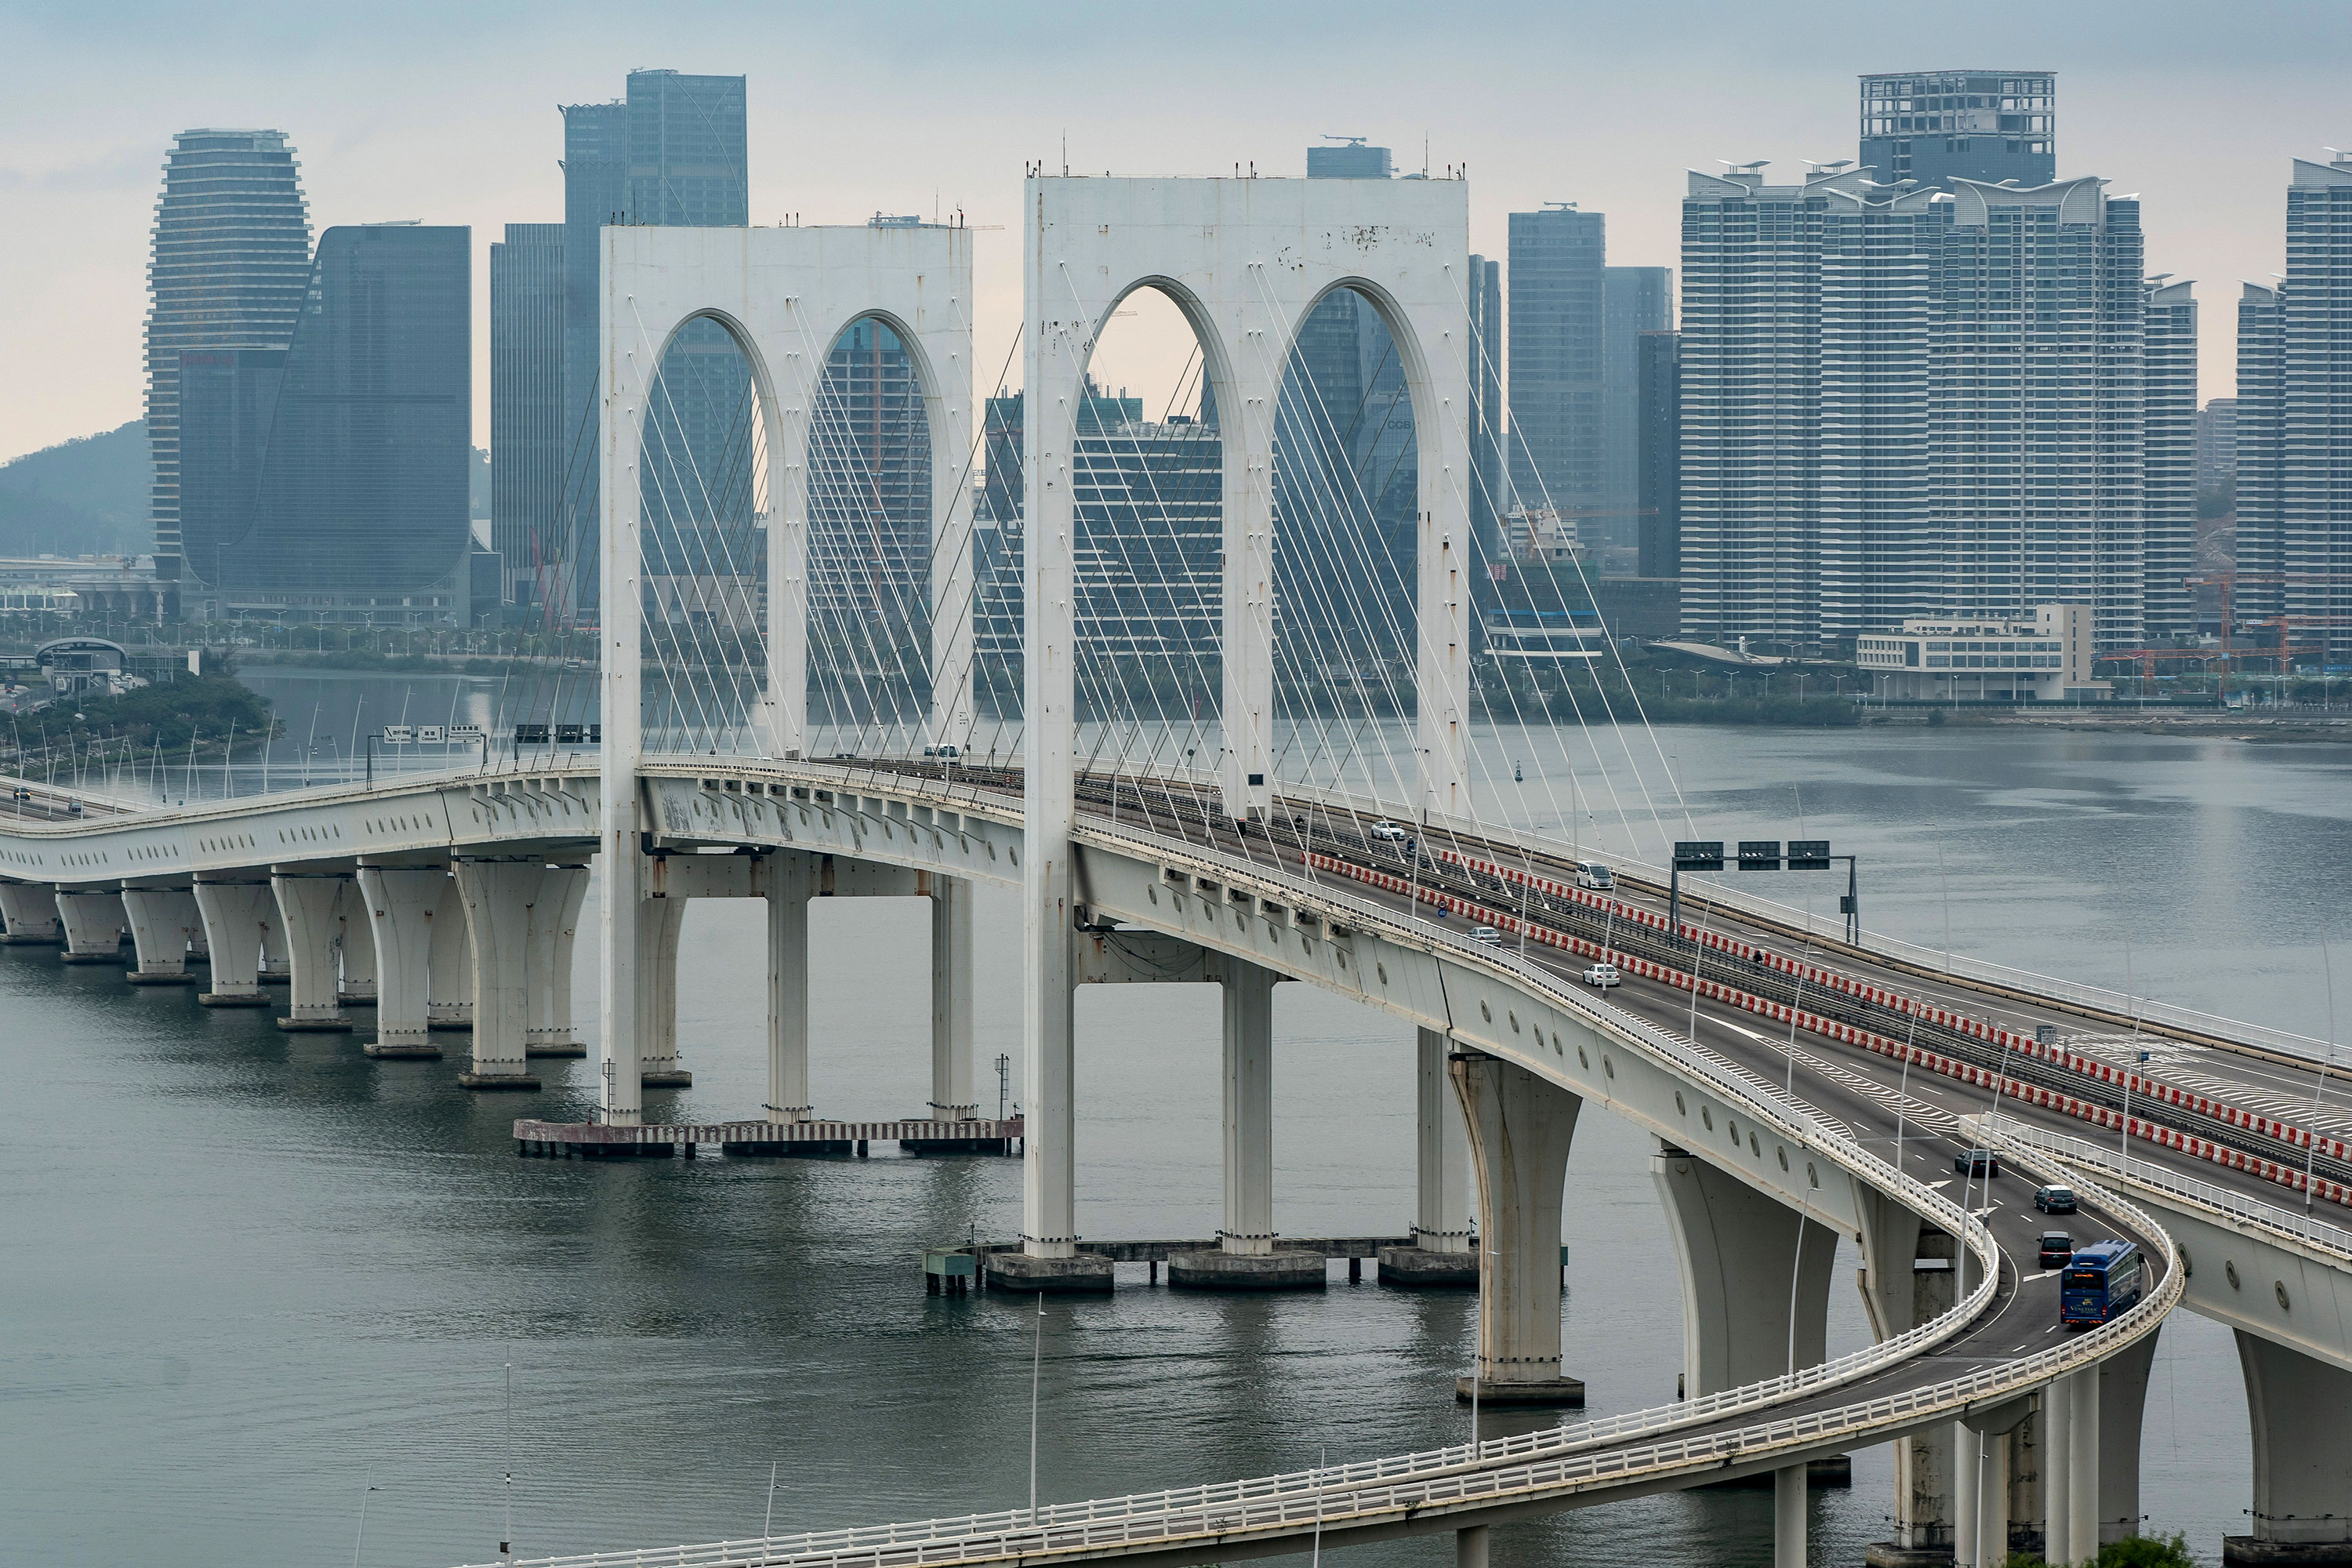 Vehicles drive across a bridge on February 5 in Macao, China.